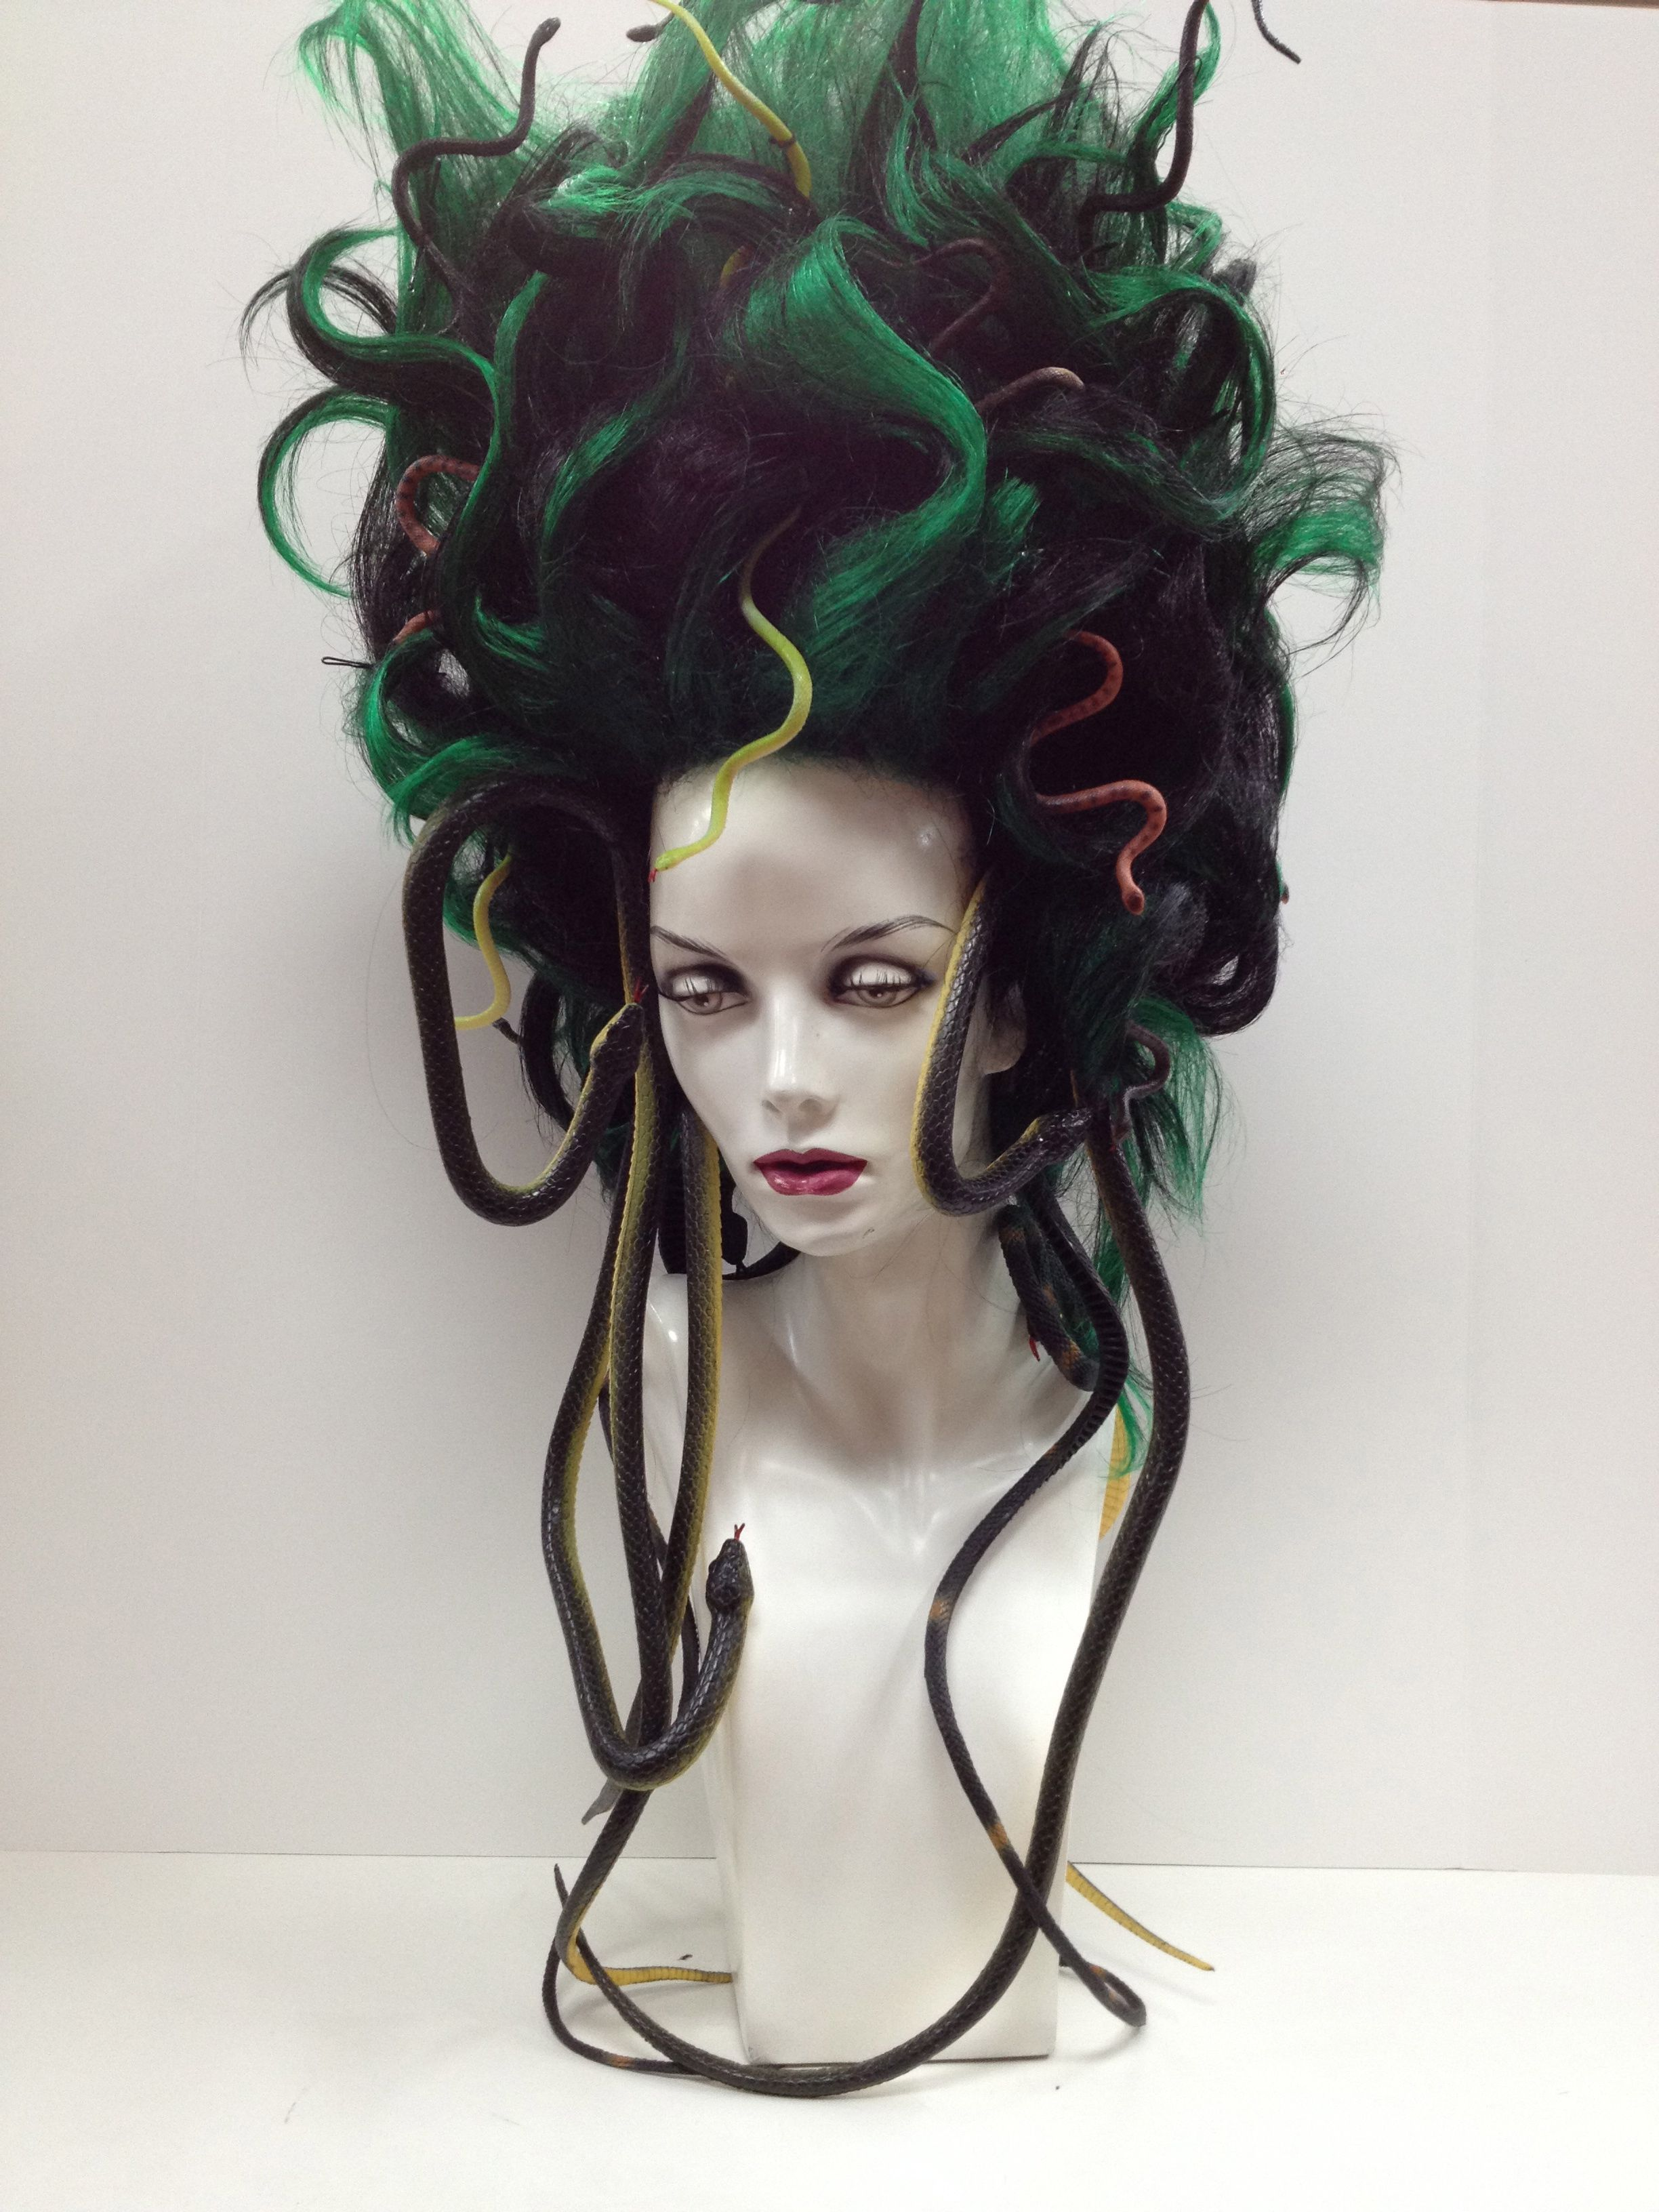 Halloween 2020 Hollywood Ca 90028 Outfitters Wig, Wigs, 6626 Hollywood Blvd, Hollywood, CA 90028